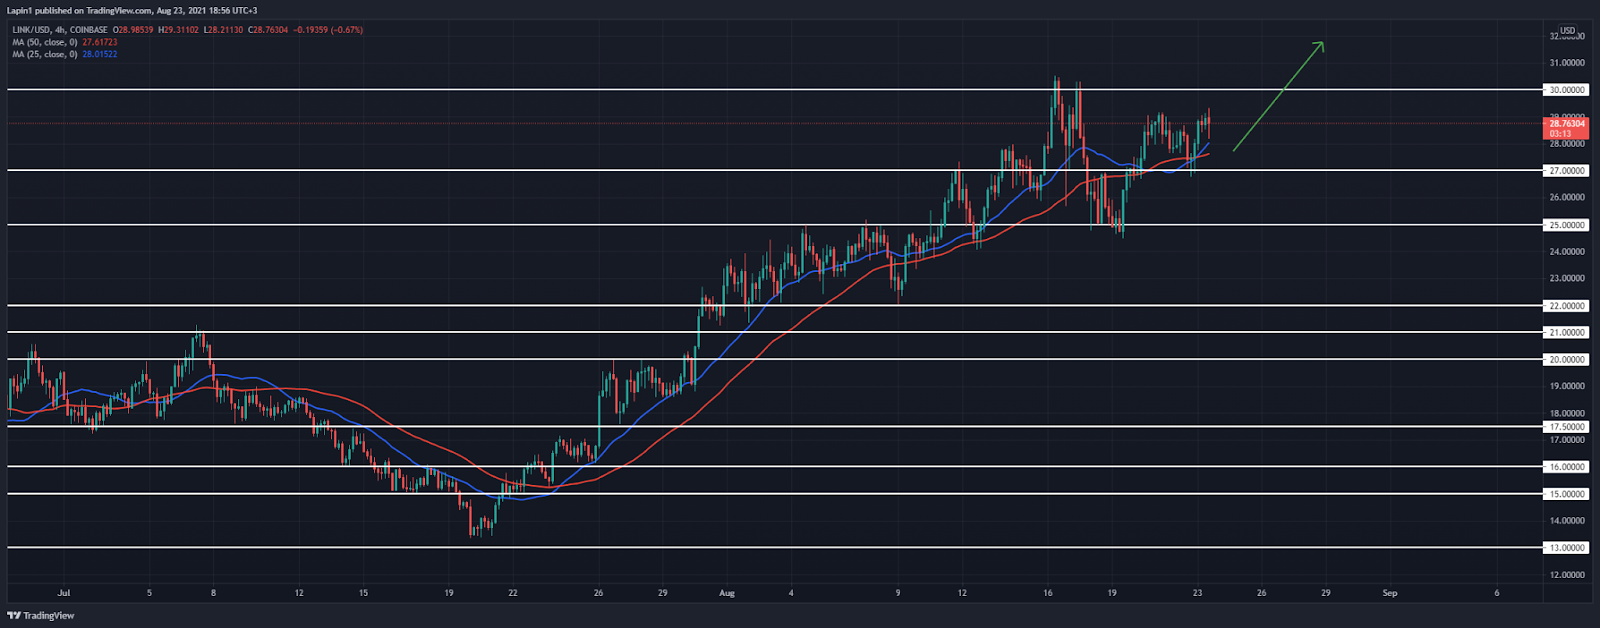 Chainlink Price Analysis: LINK sets higher low at $27, ready to break $30 resistance?